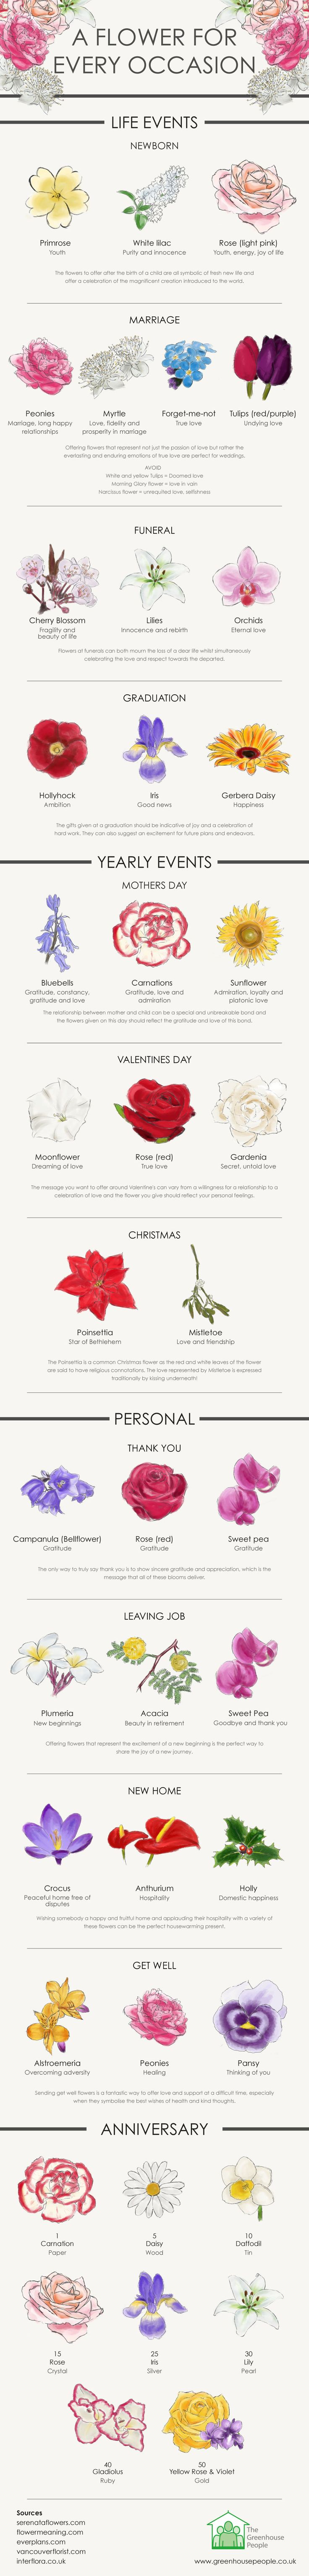 A Flower For Every Occasion #Infographic #Flower